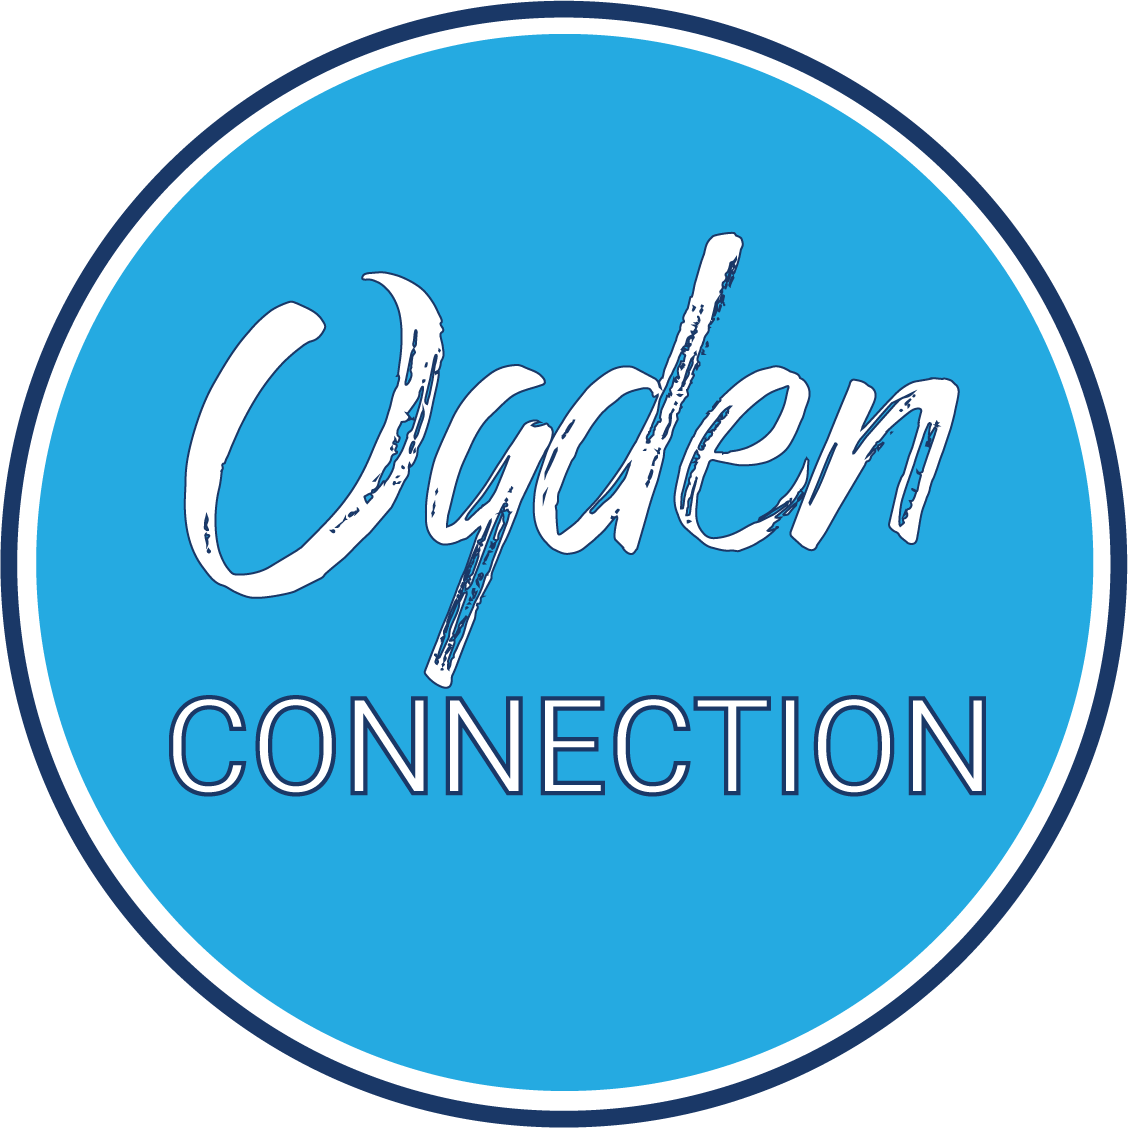 OGDEN CONNECTION